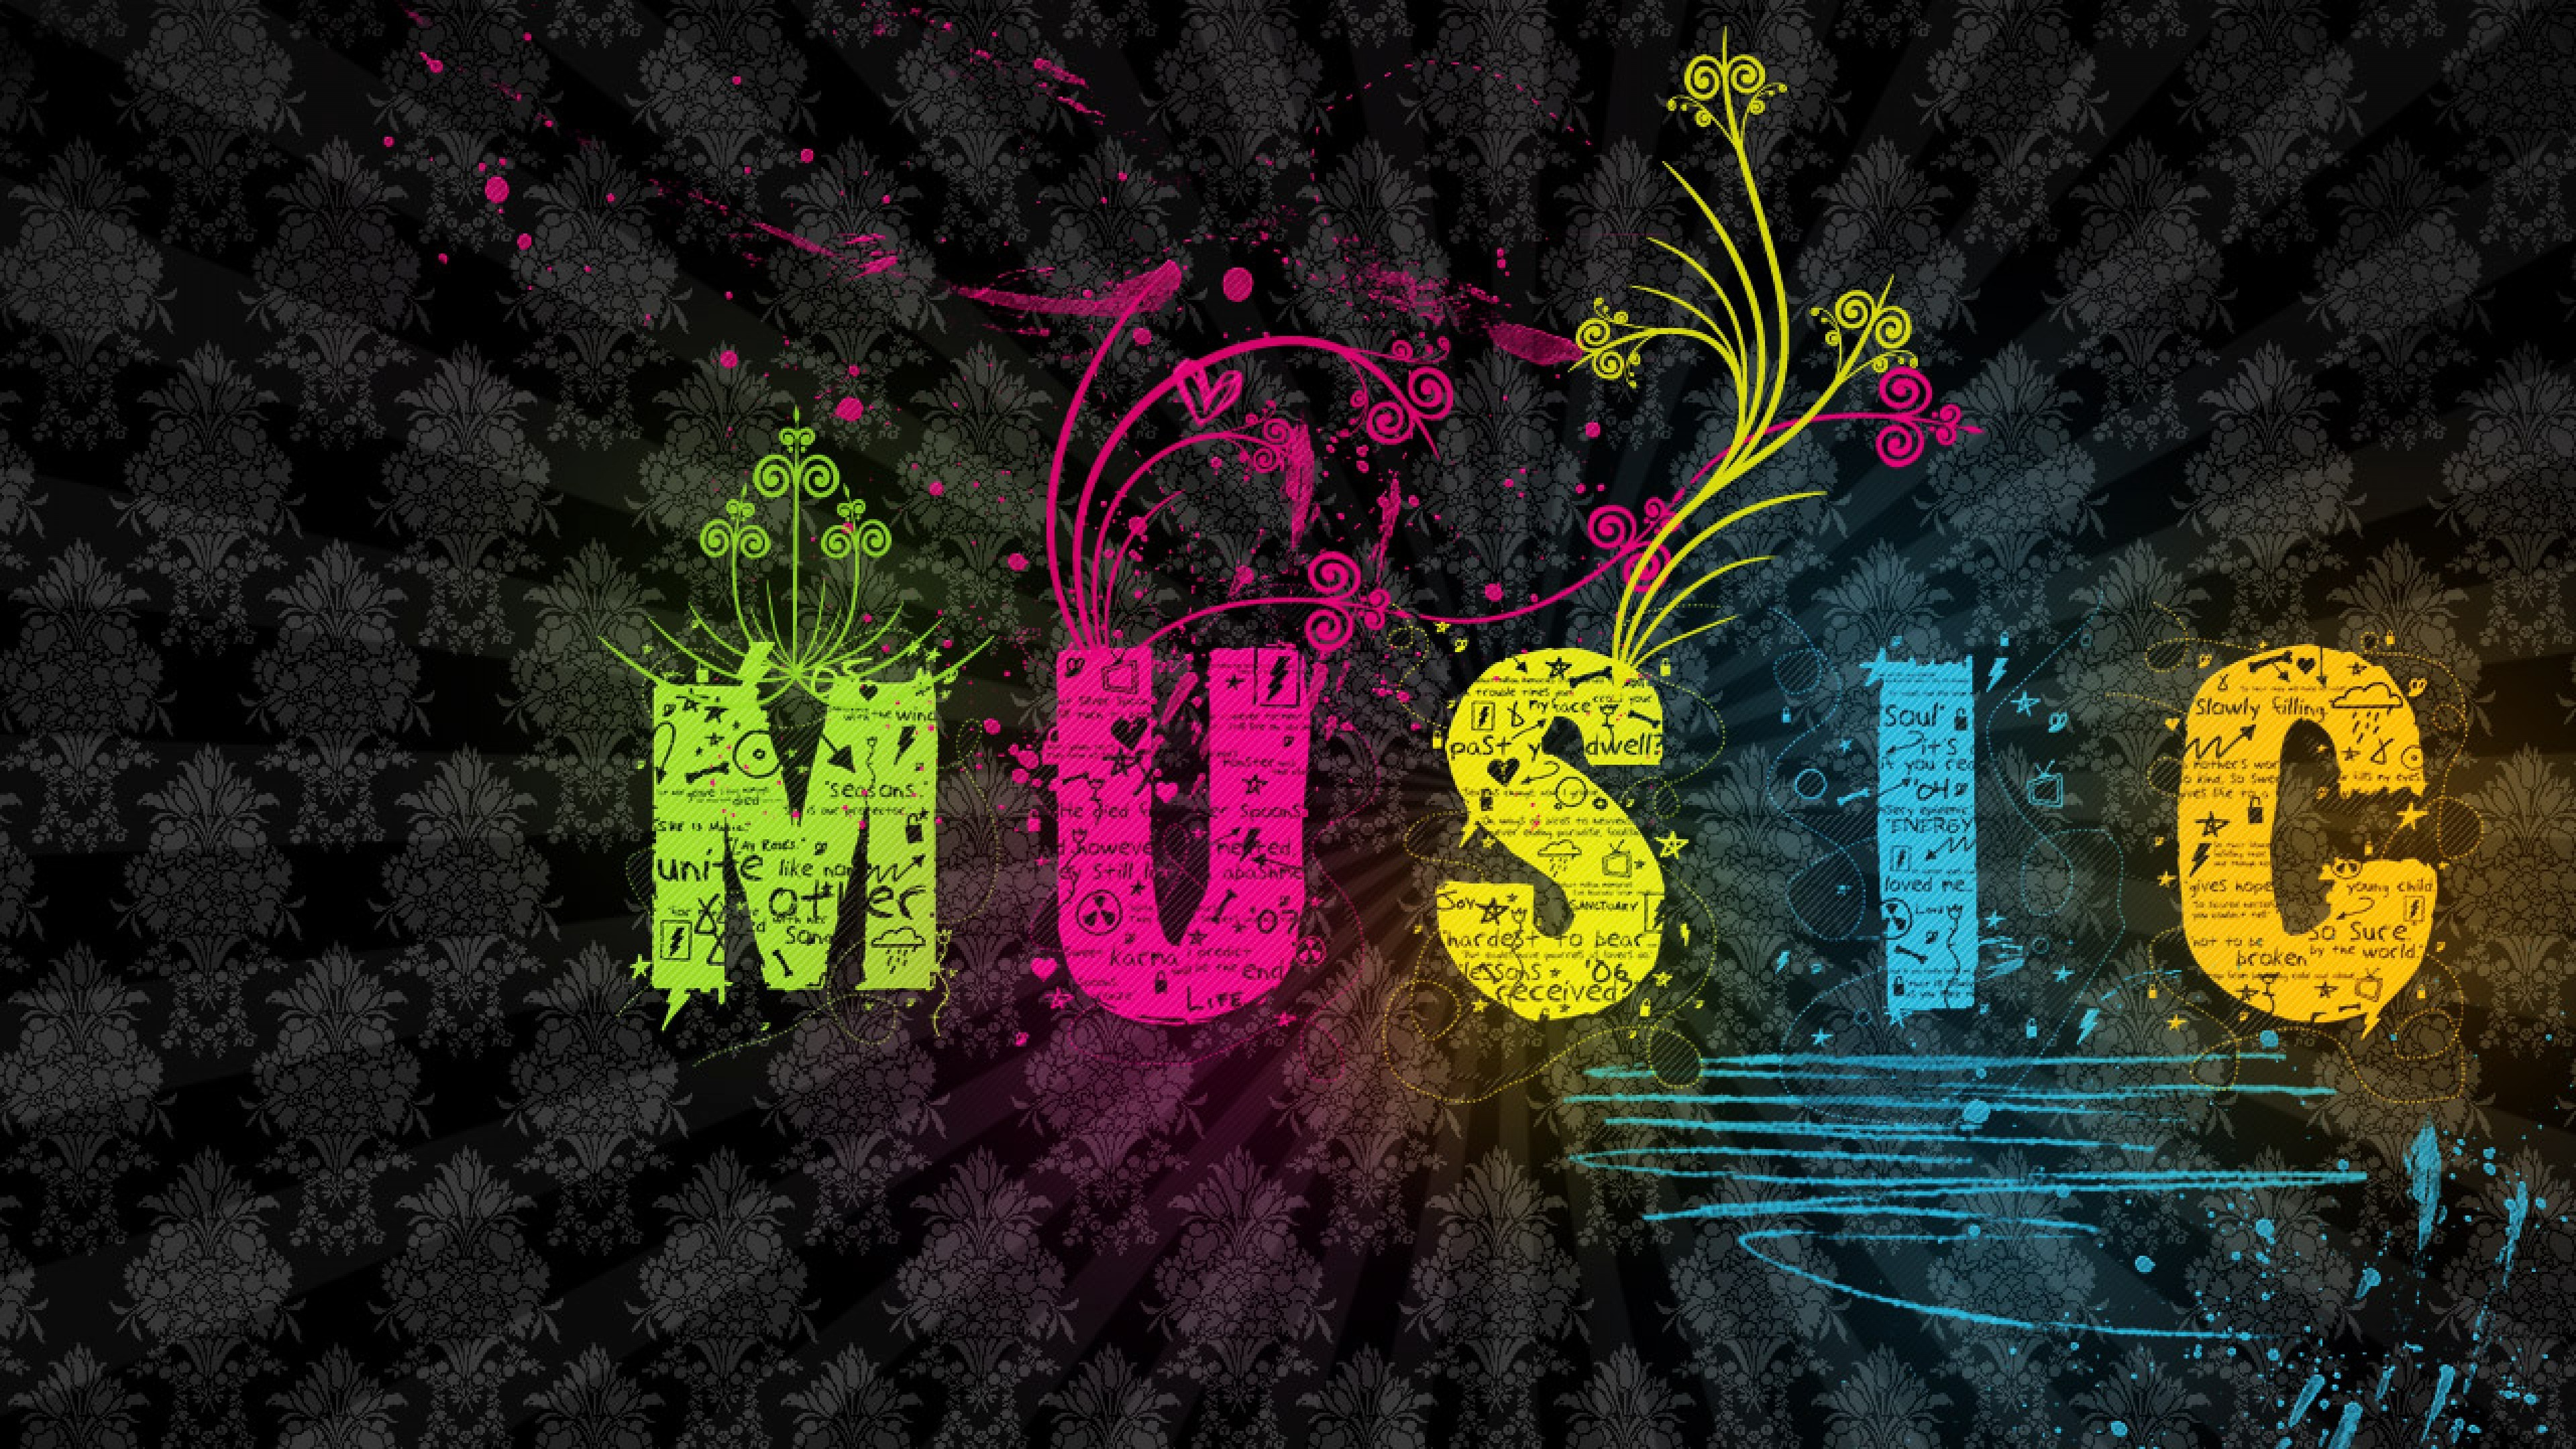 3840x2160 Colourful Music Background Wallpaper for Desktop and Mobiles - 4K Ultra HD